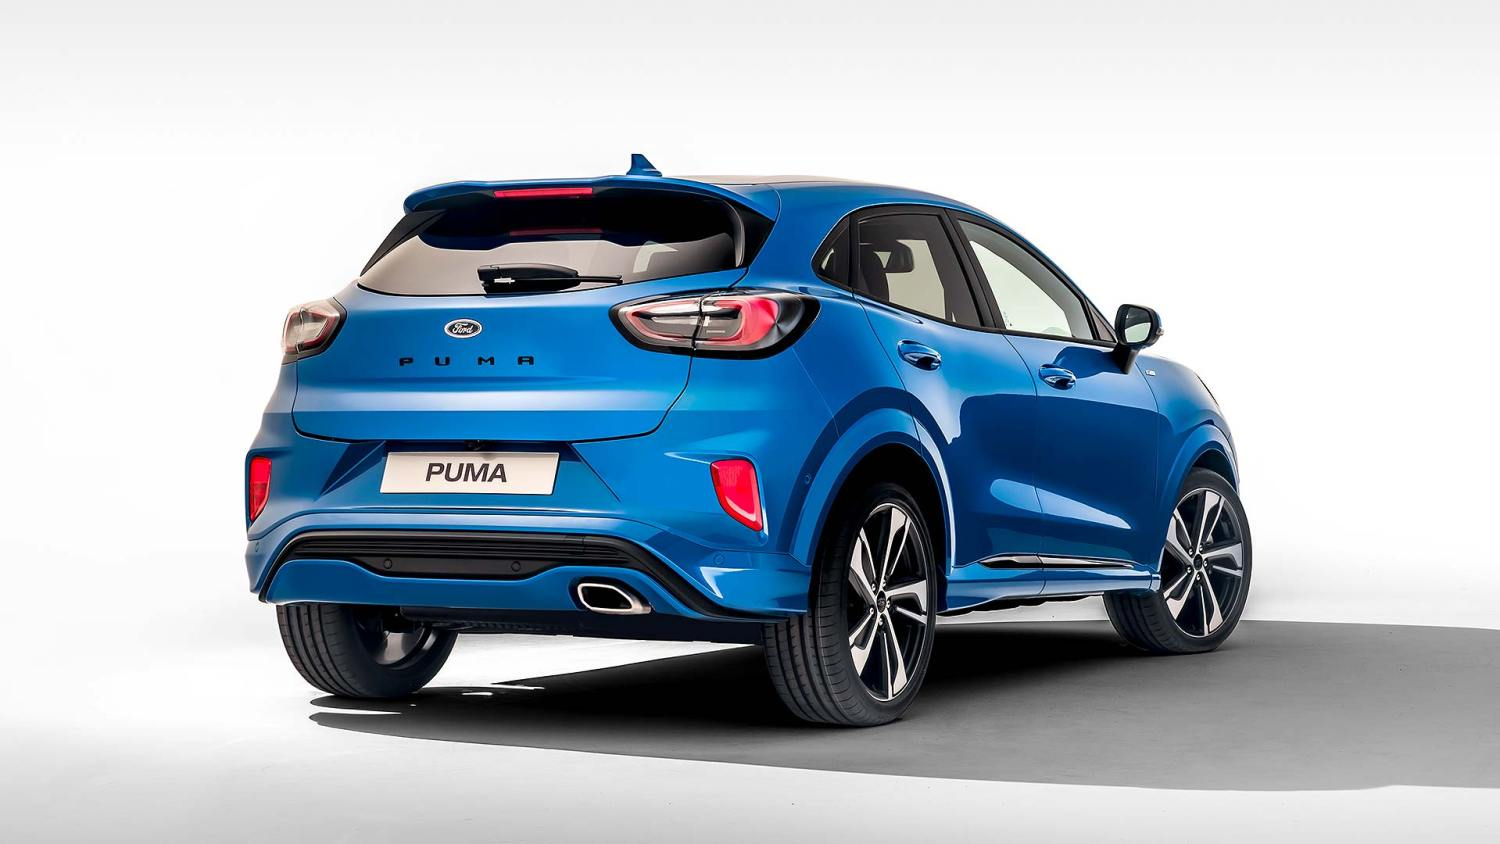 New Ford Puma SUV